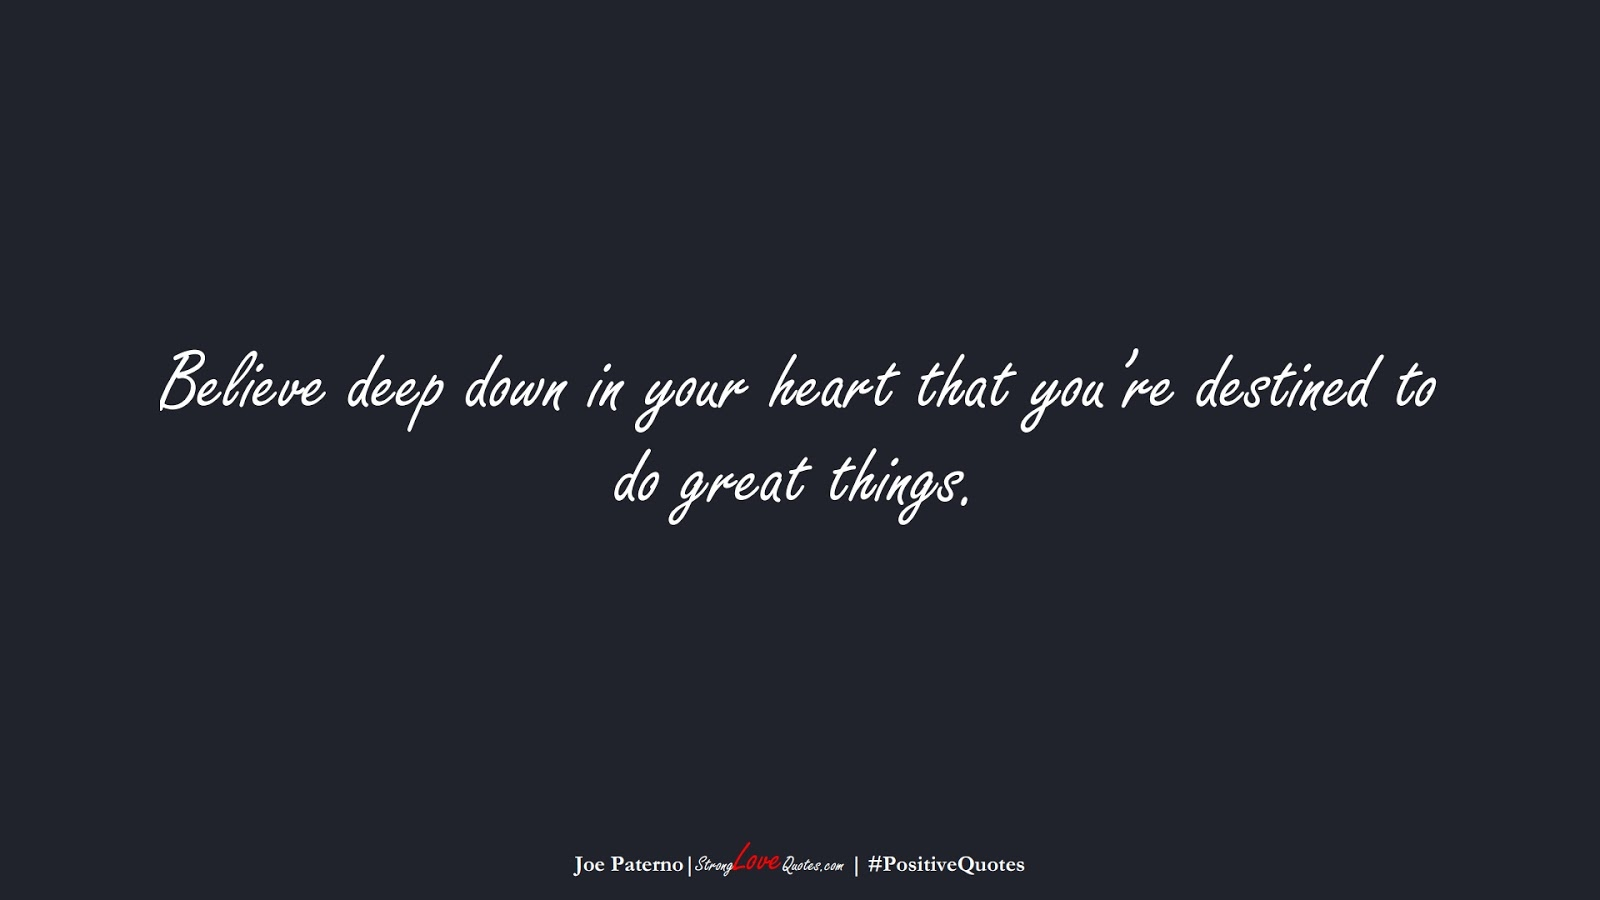 Believe deep down in your heart that you're destined to do great things. (Joe Paterno);  #PositiveQuotes